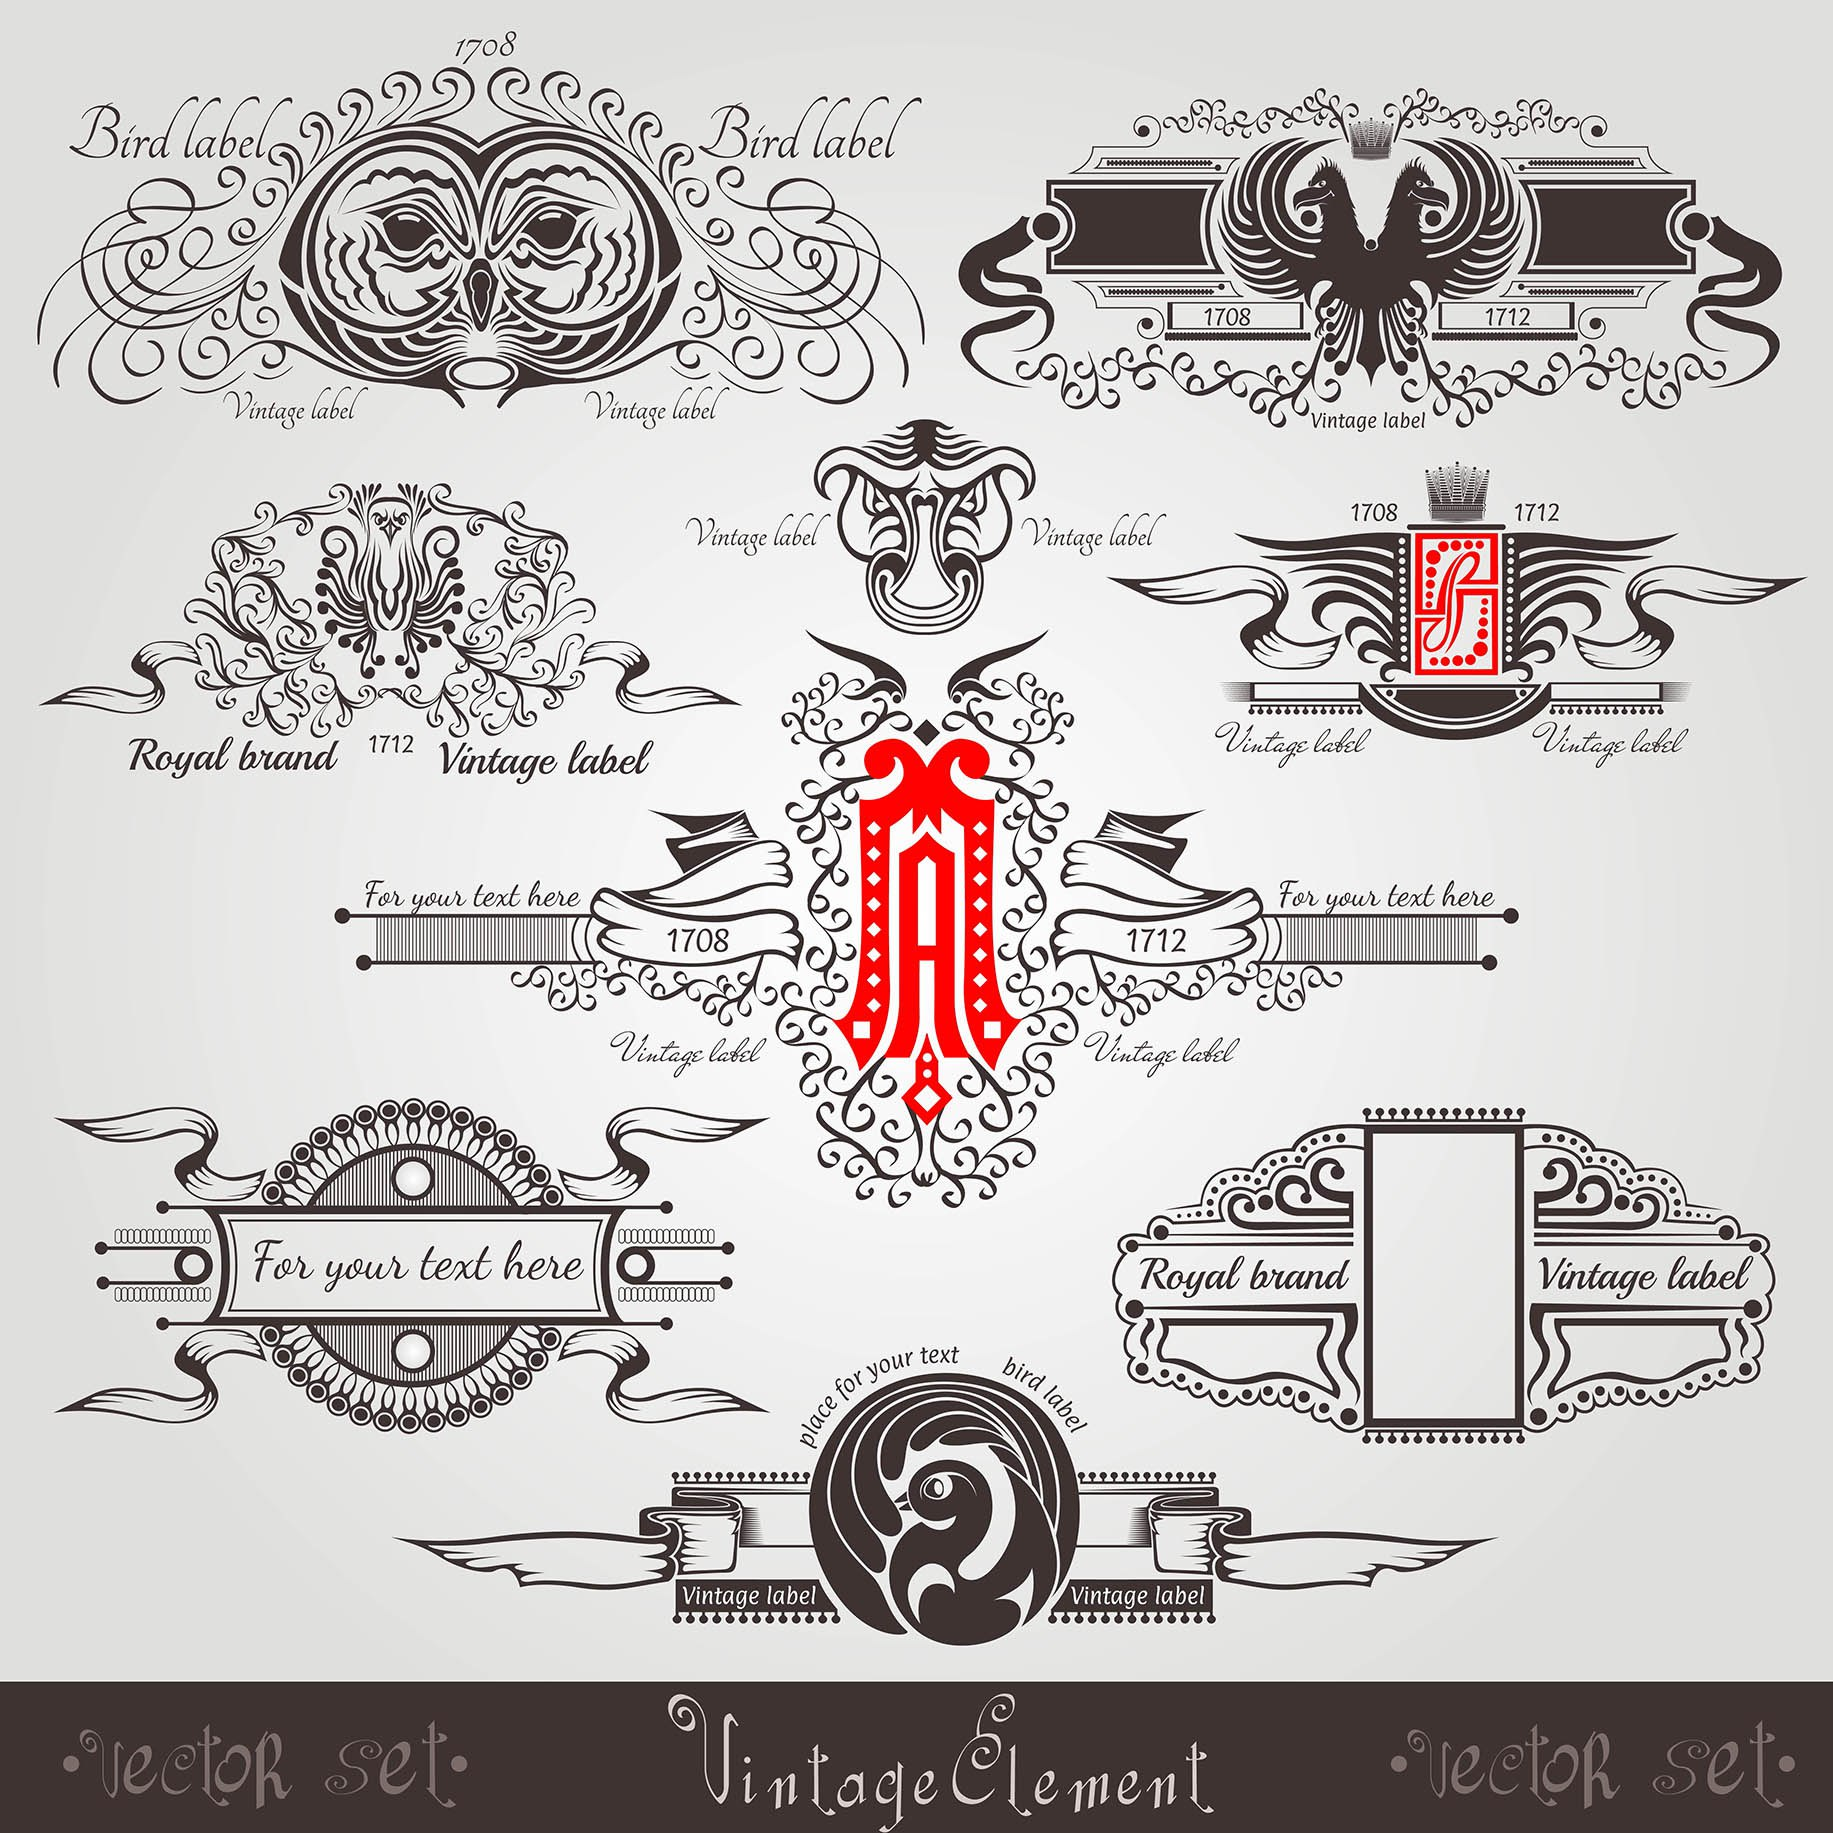 Vintage Engraving Banners With Different Birds Letter And Pattern Free Vector